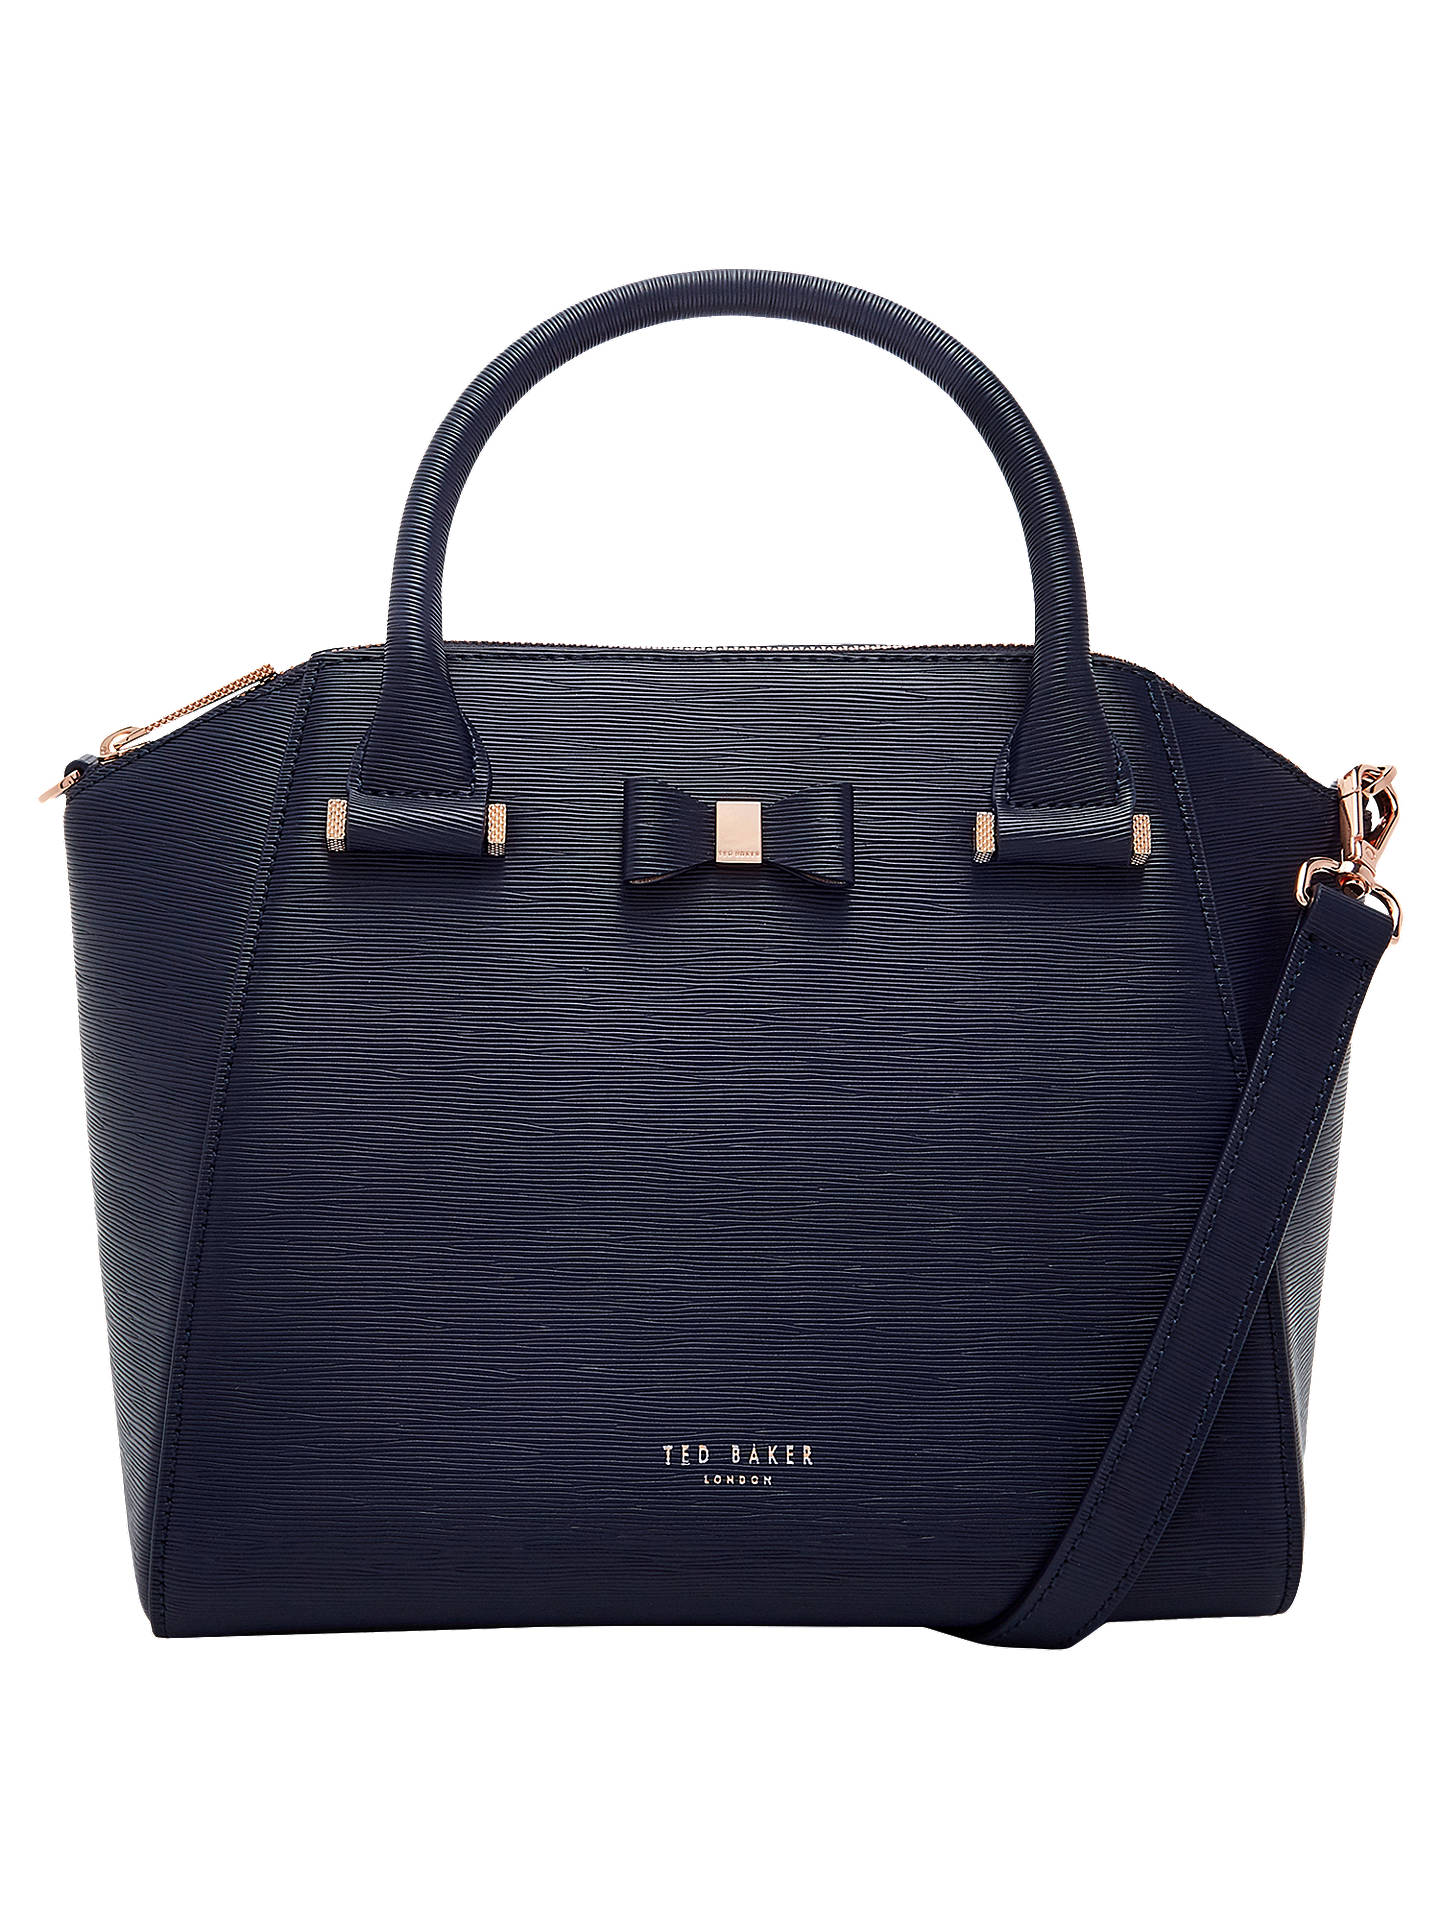 b8d66e87c5470 Ted Baker Cala Bow Small Leather Tote Bag at John Lewis   Partners